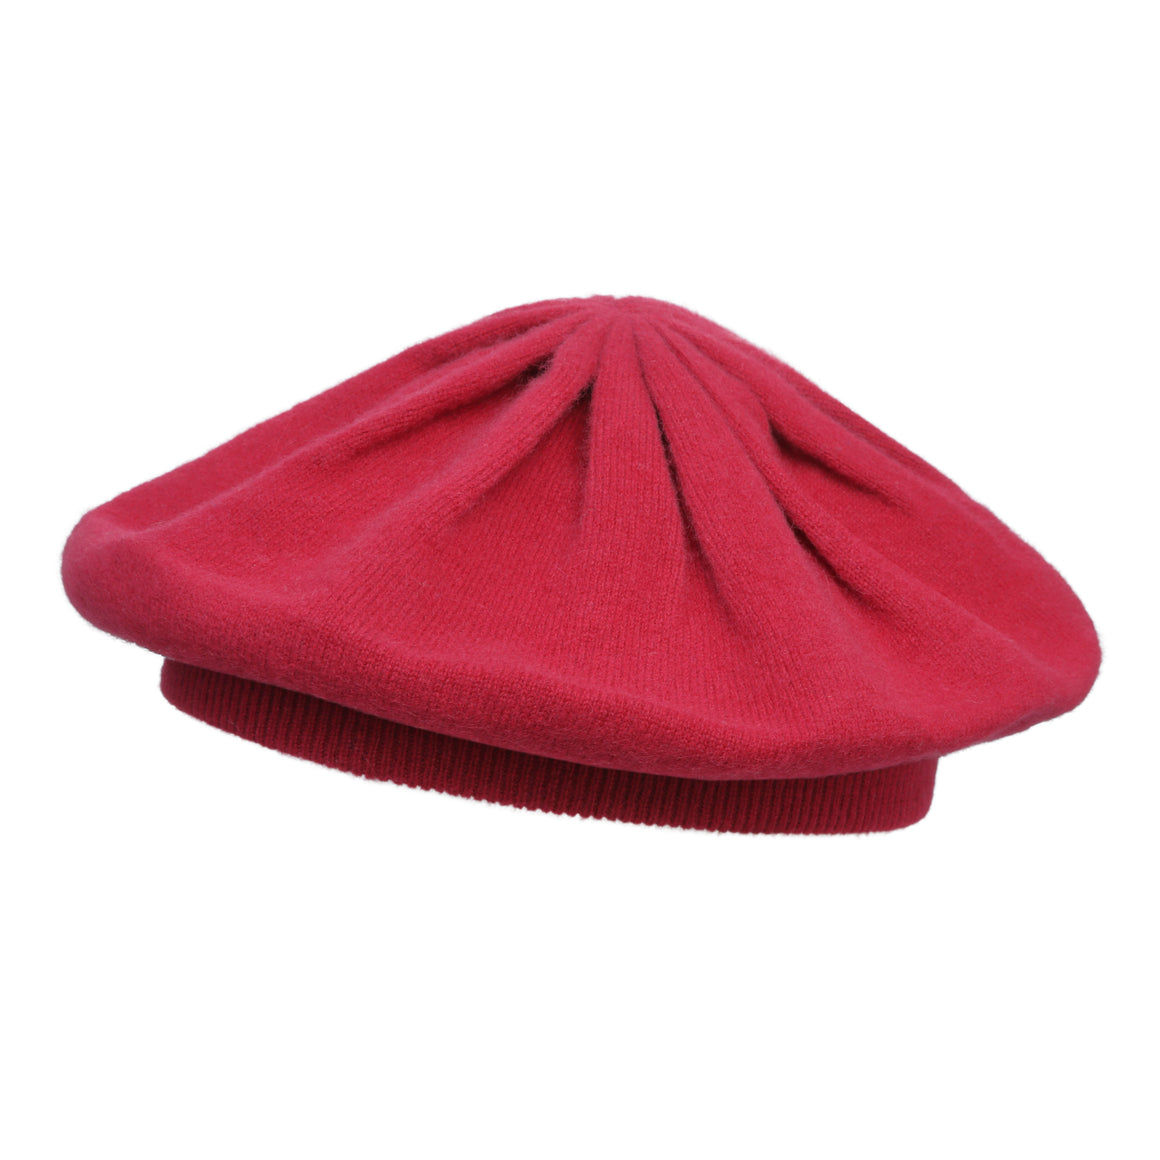 Bordeaux Wine | Cashmere Beret | Shop at The Cashmere Choice London